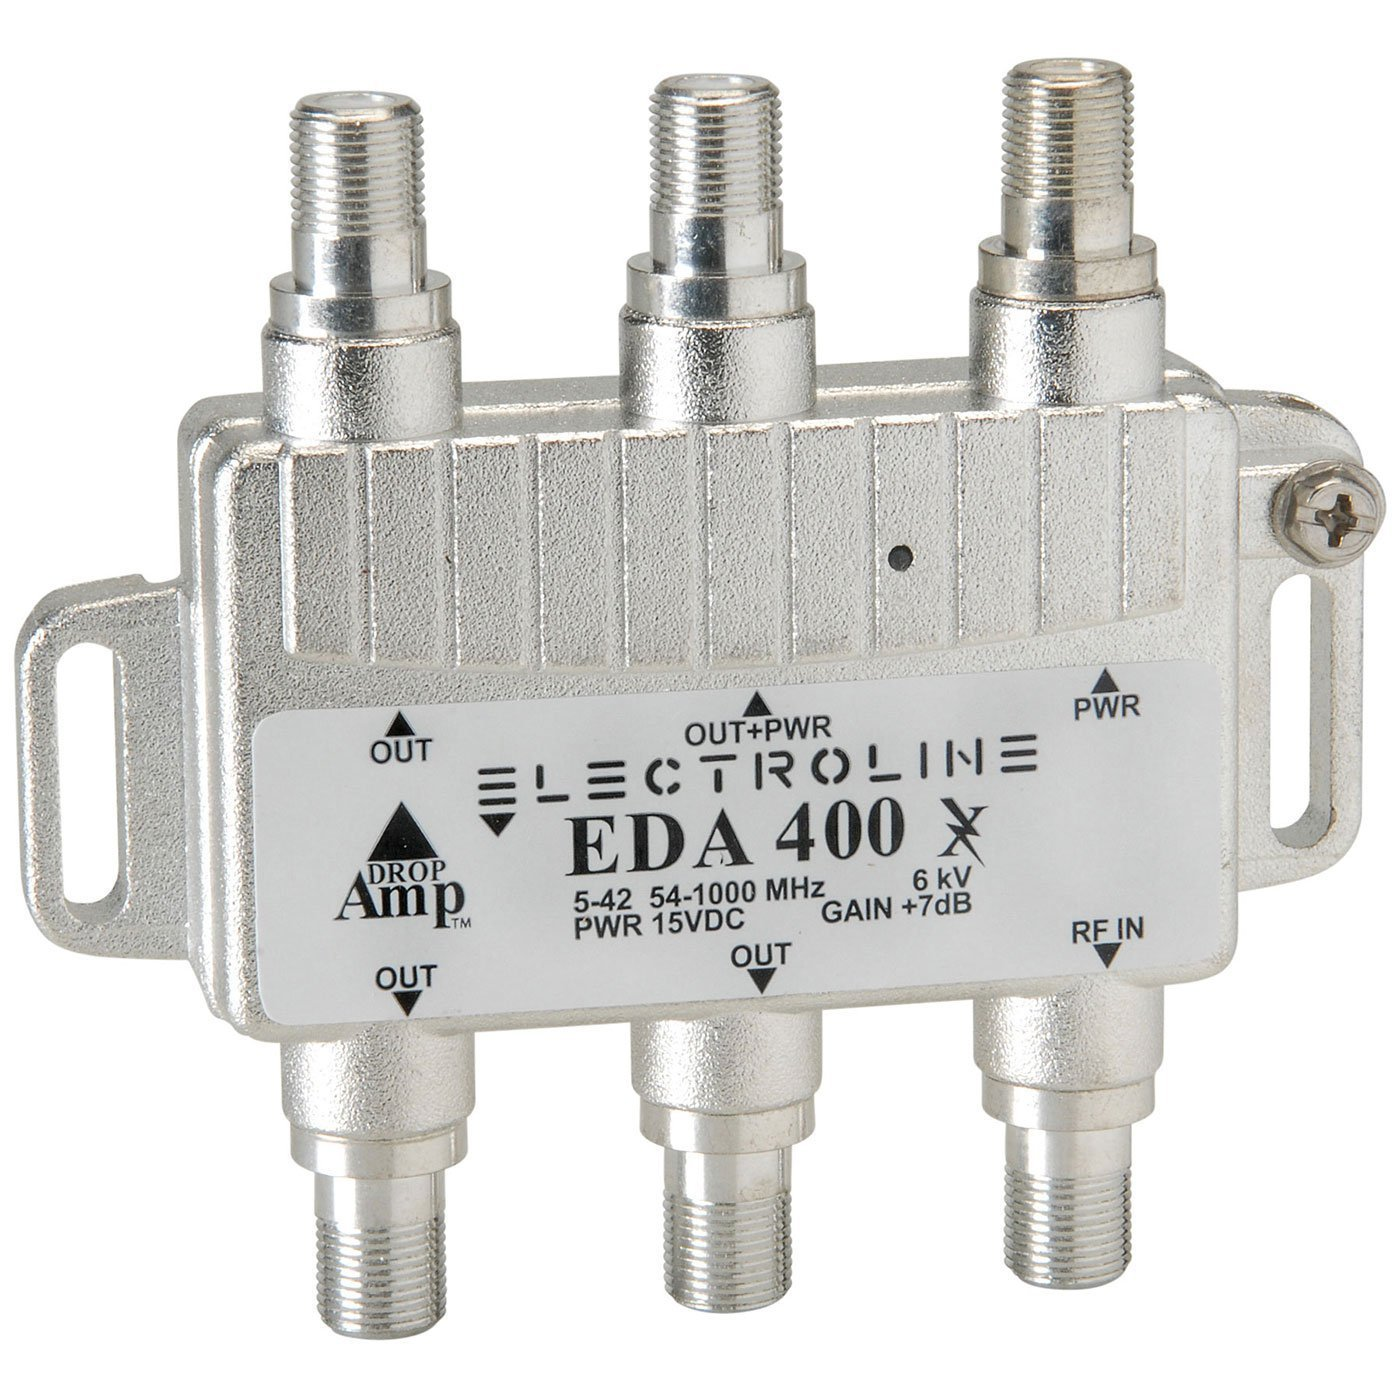 EDA400 Compact Bi-Directional Signal Booster 4-Port Cable...